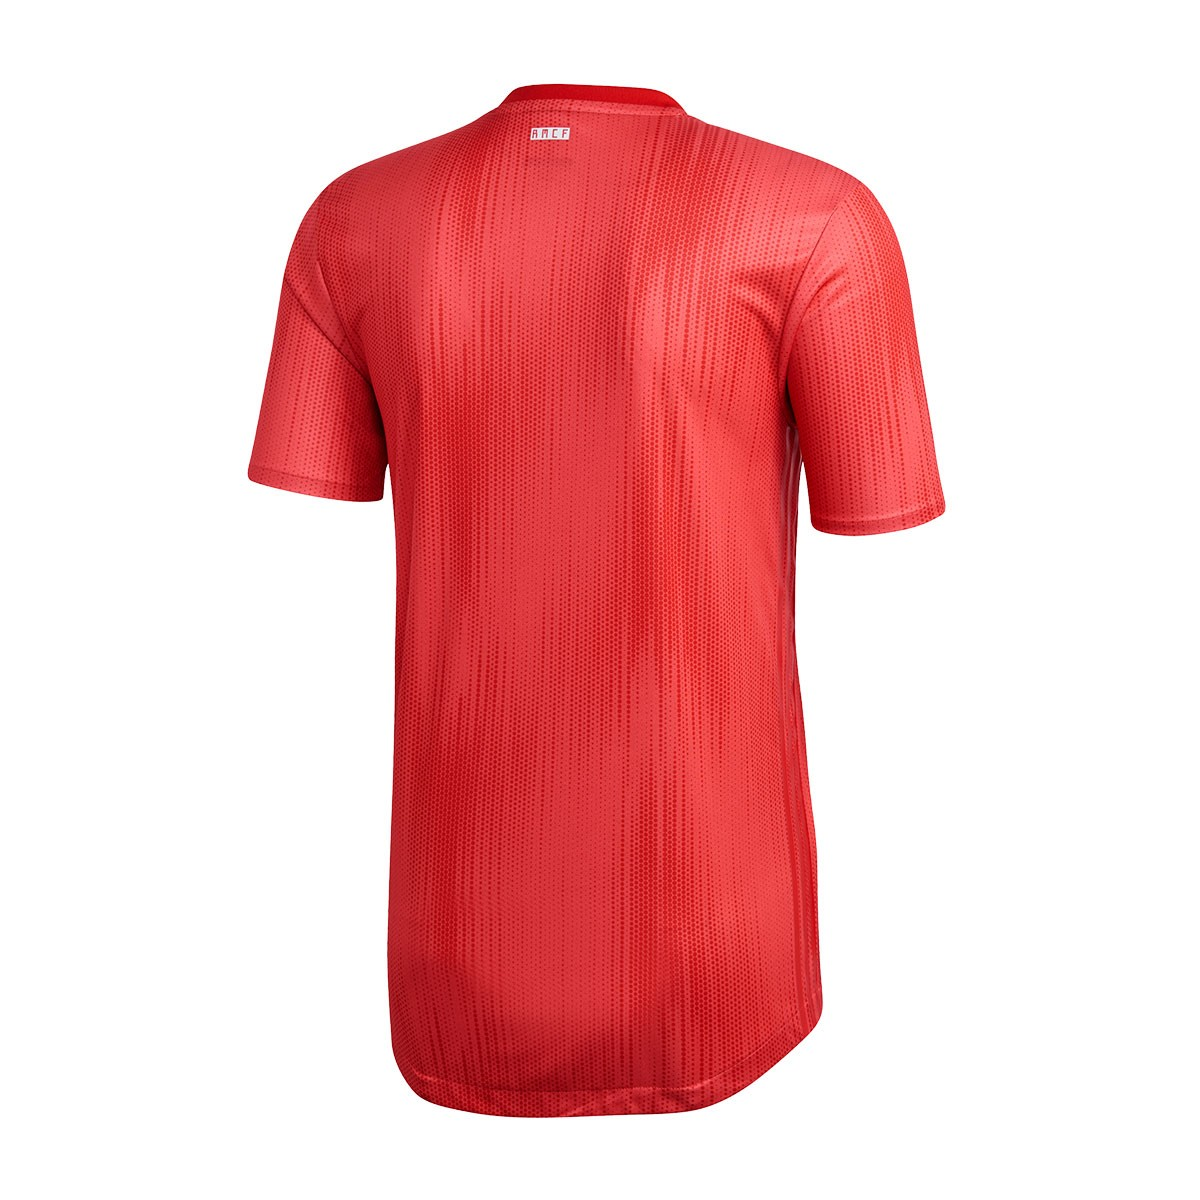 ec77e92a40d13 Camiseta adidas Real Madrid Tercera Equipación Authentic 2018-2019 Real  coral-Vivid red - Tienda de fútbol Fútbol Emotion